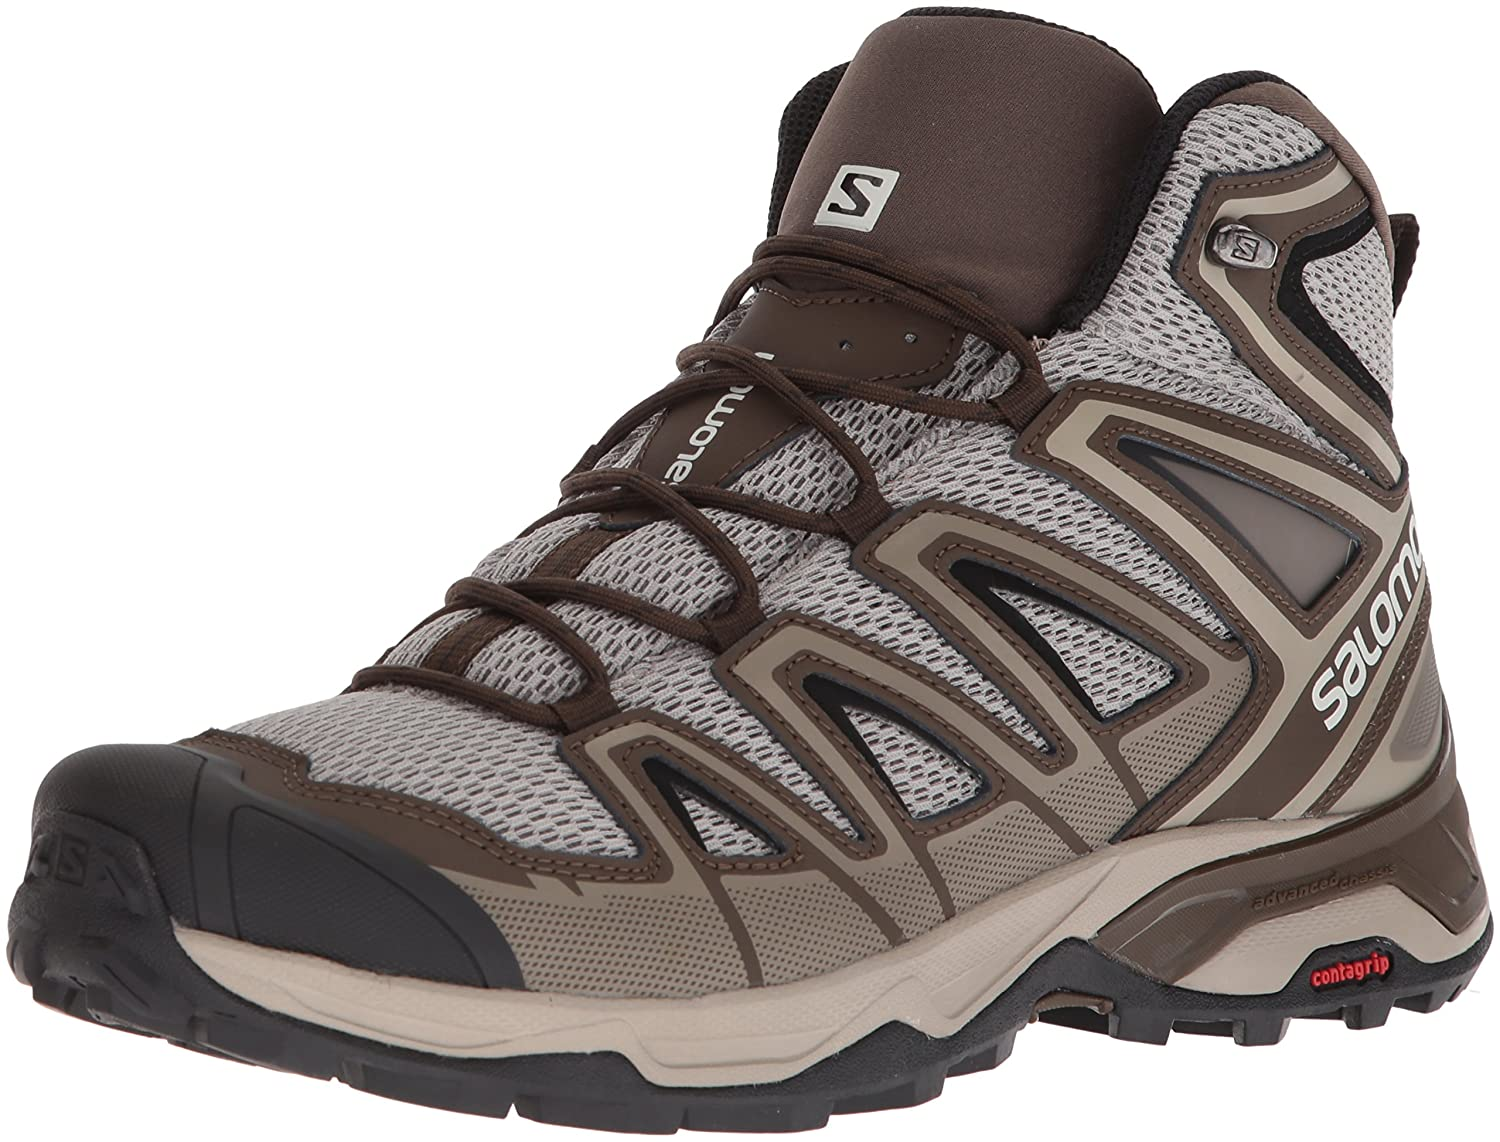 buy popular a3d78 4c205 Salomon Men's X Ultra Mid 3 Aero Hiking Shoes